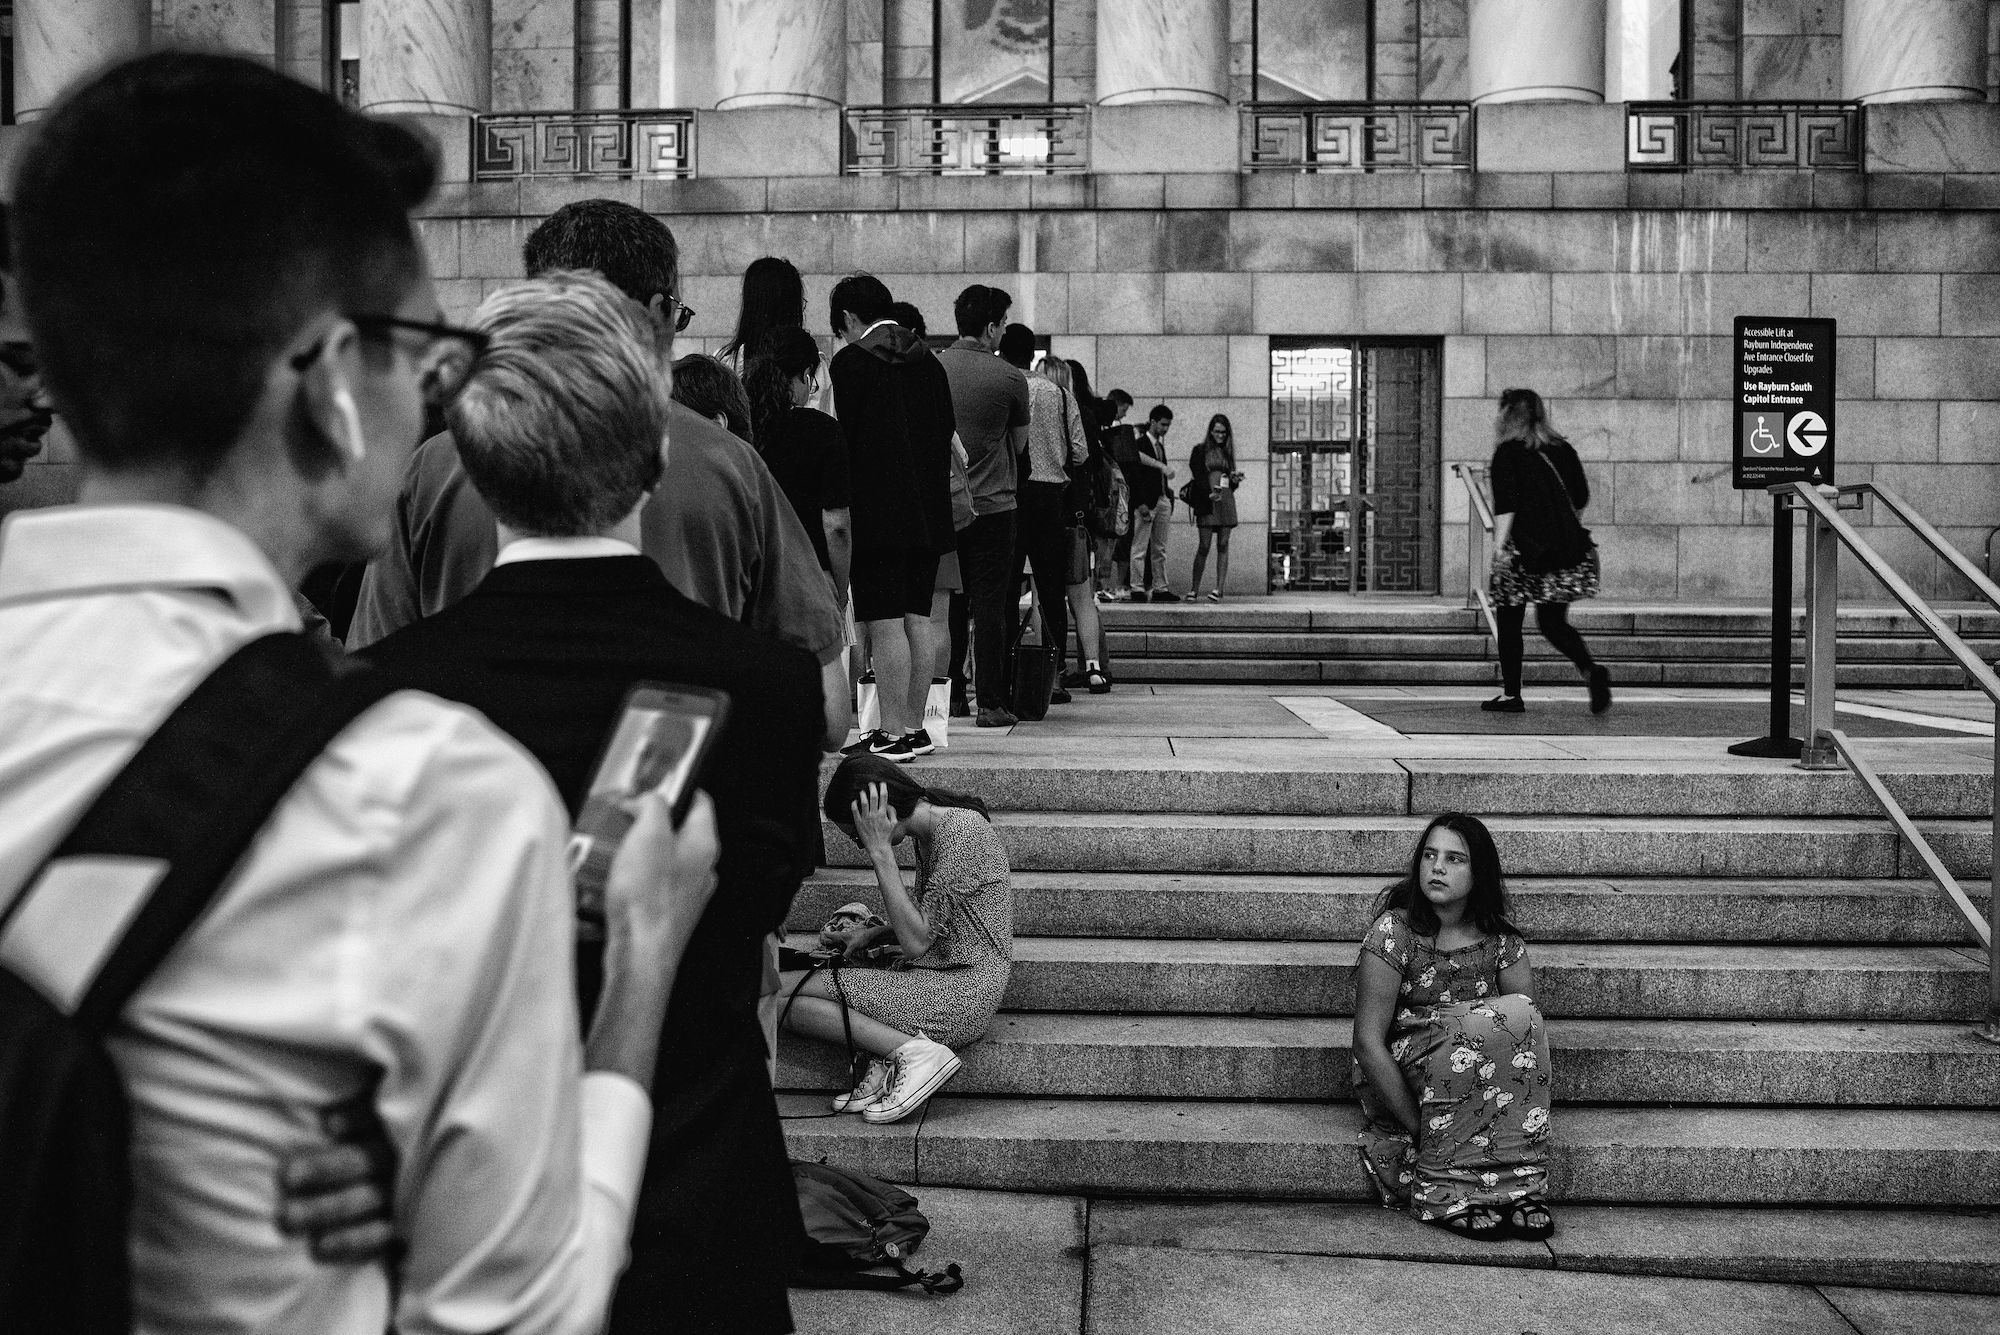 Day 915: People wait outside the Rayburn House Office Building in Washington, DC on July 24th, 2019, the day of former Special counsel Robert Mueller's testimony before the House Judiciary and Intelligence Committees.